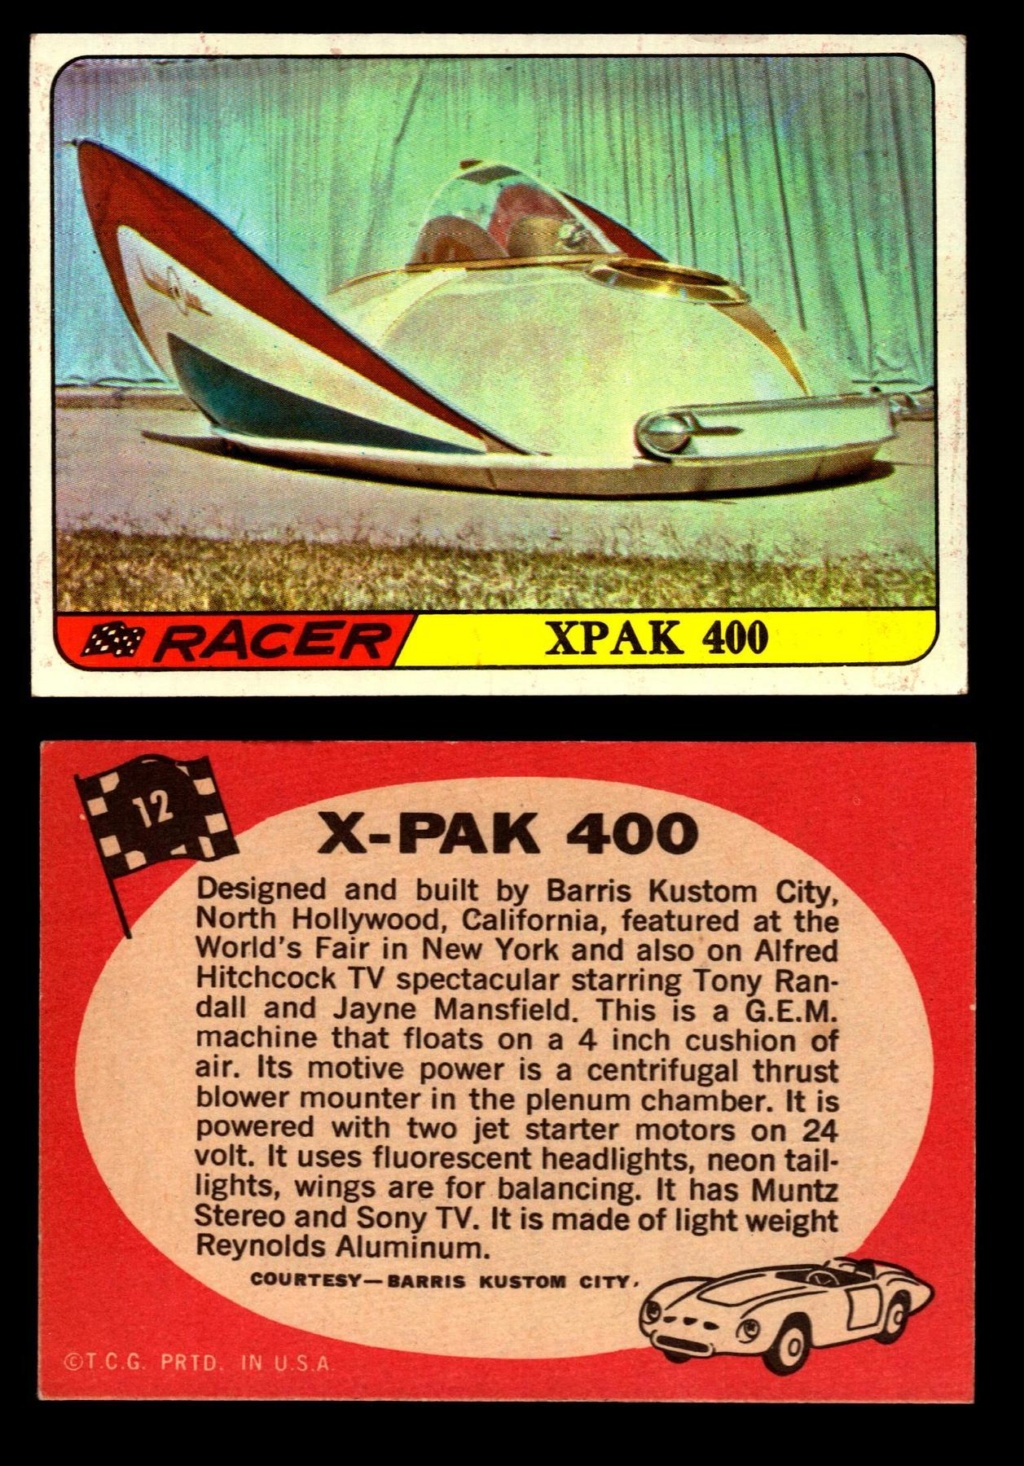 Hot Rods Topps - Vintage Trading Cards 1968 - Custom car - Dragster - Racer - Dream car - Barris Kustom City - Ed Roth Darrill Starbird, Gene Winfield, Bill Cuchenberry 12_ea612